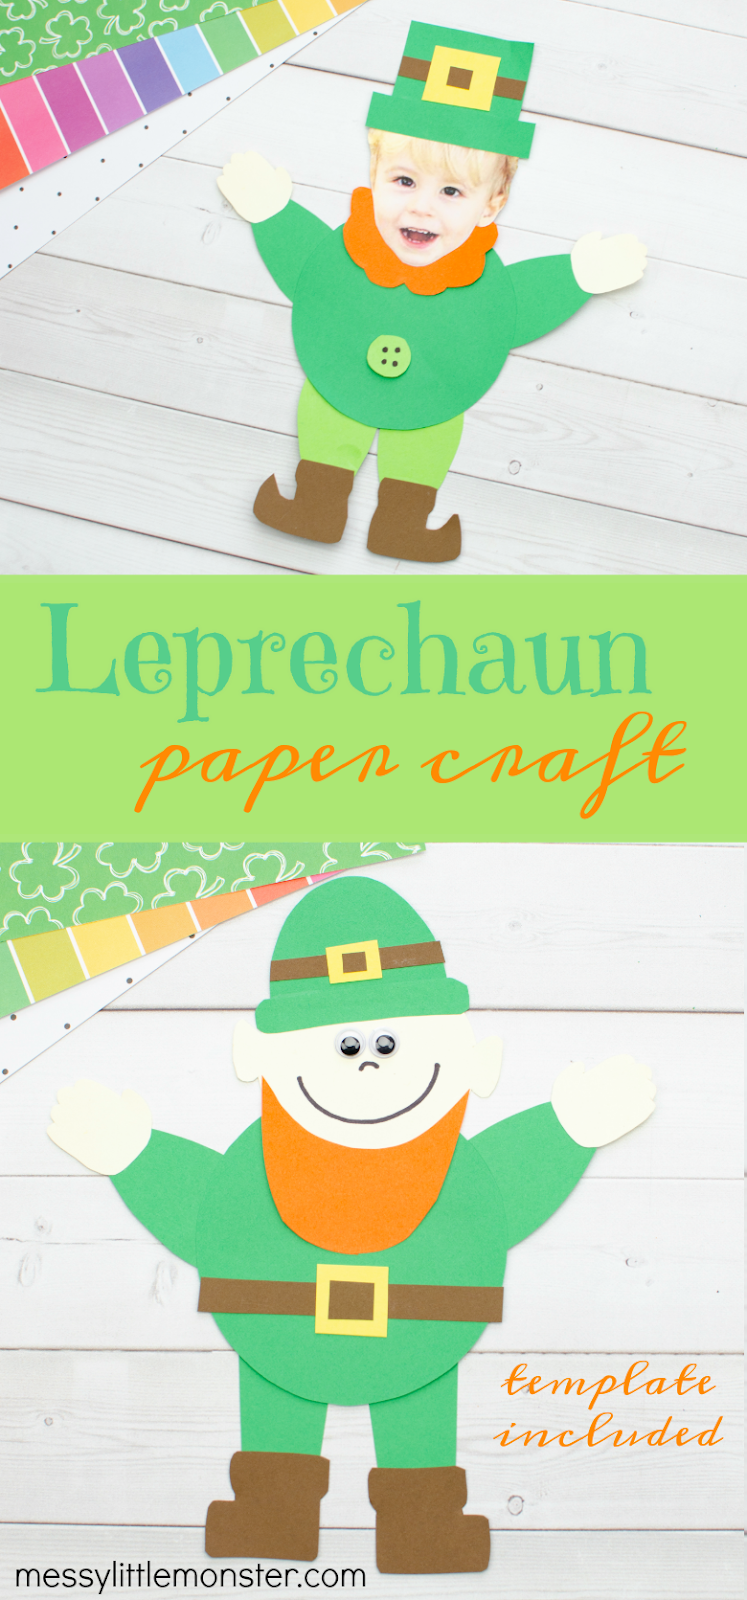 Paper Leprechaun Craft for kids. Printable leprechaun template to make a mix and match St Patricks Day craft for kids.